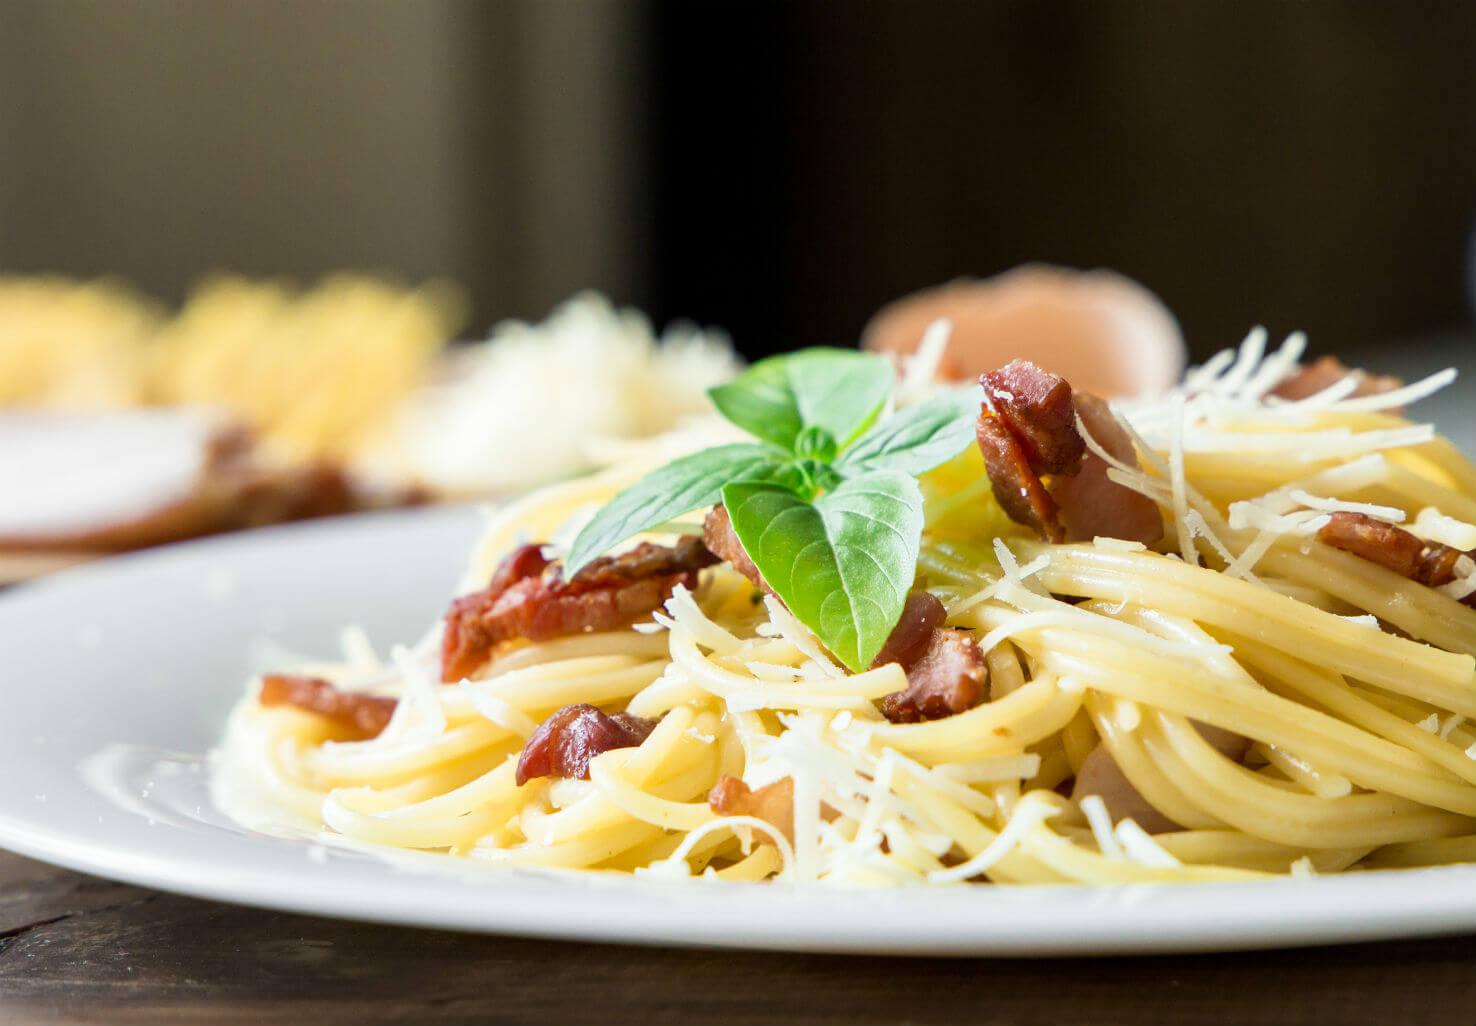 Spaghetti dinner with bacon, herbs, and cheese